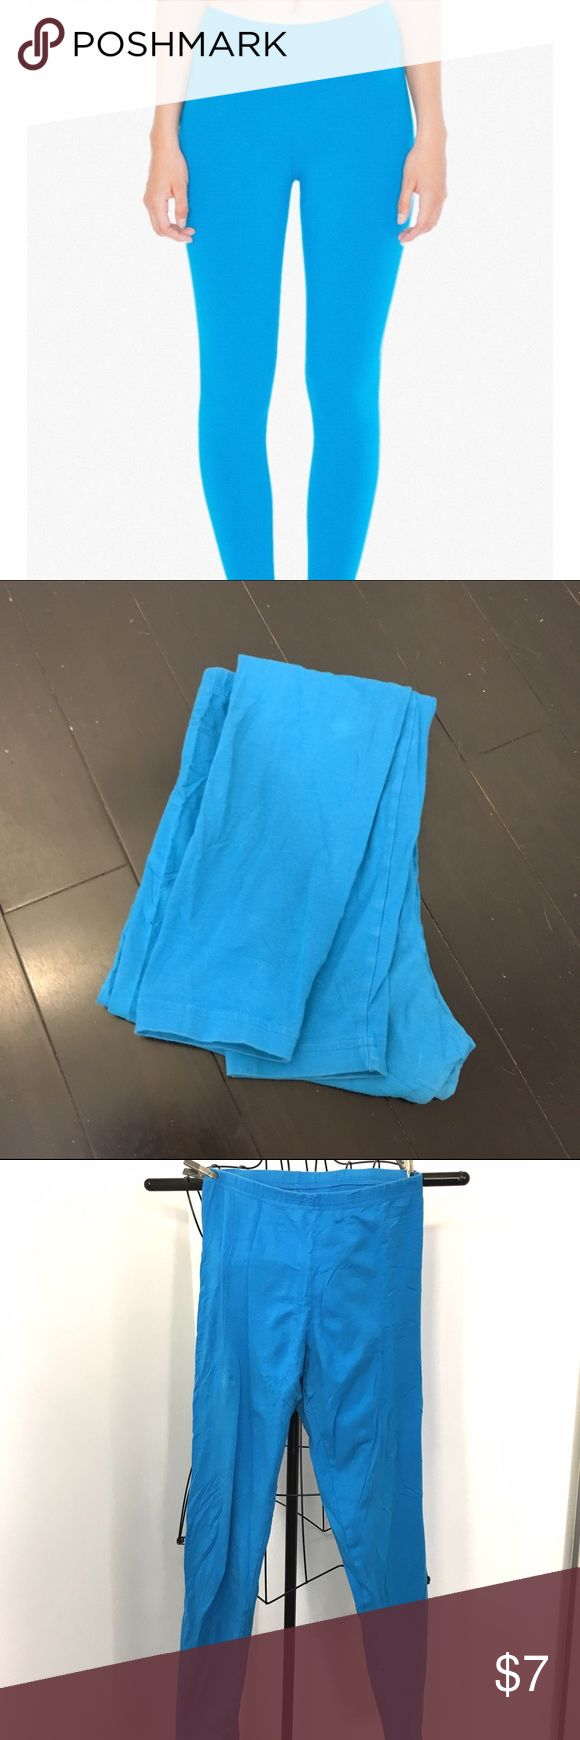 American Apparel teal cotton stretch leggings, XL American Apparel teal/turquoise cotton stretch leggings. Pre owned. A couple very slight faded spots from the wash. But sturdy and well made. American Apparel Pants Leggings